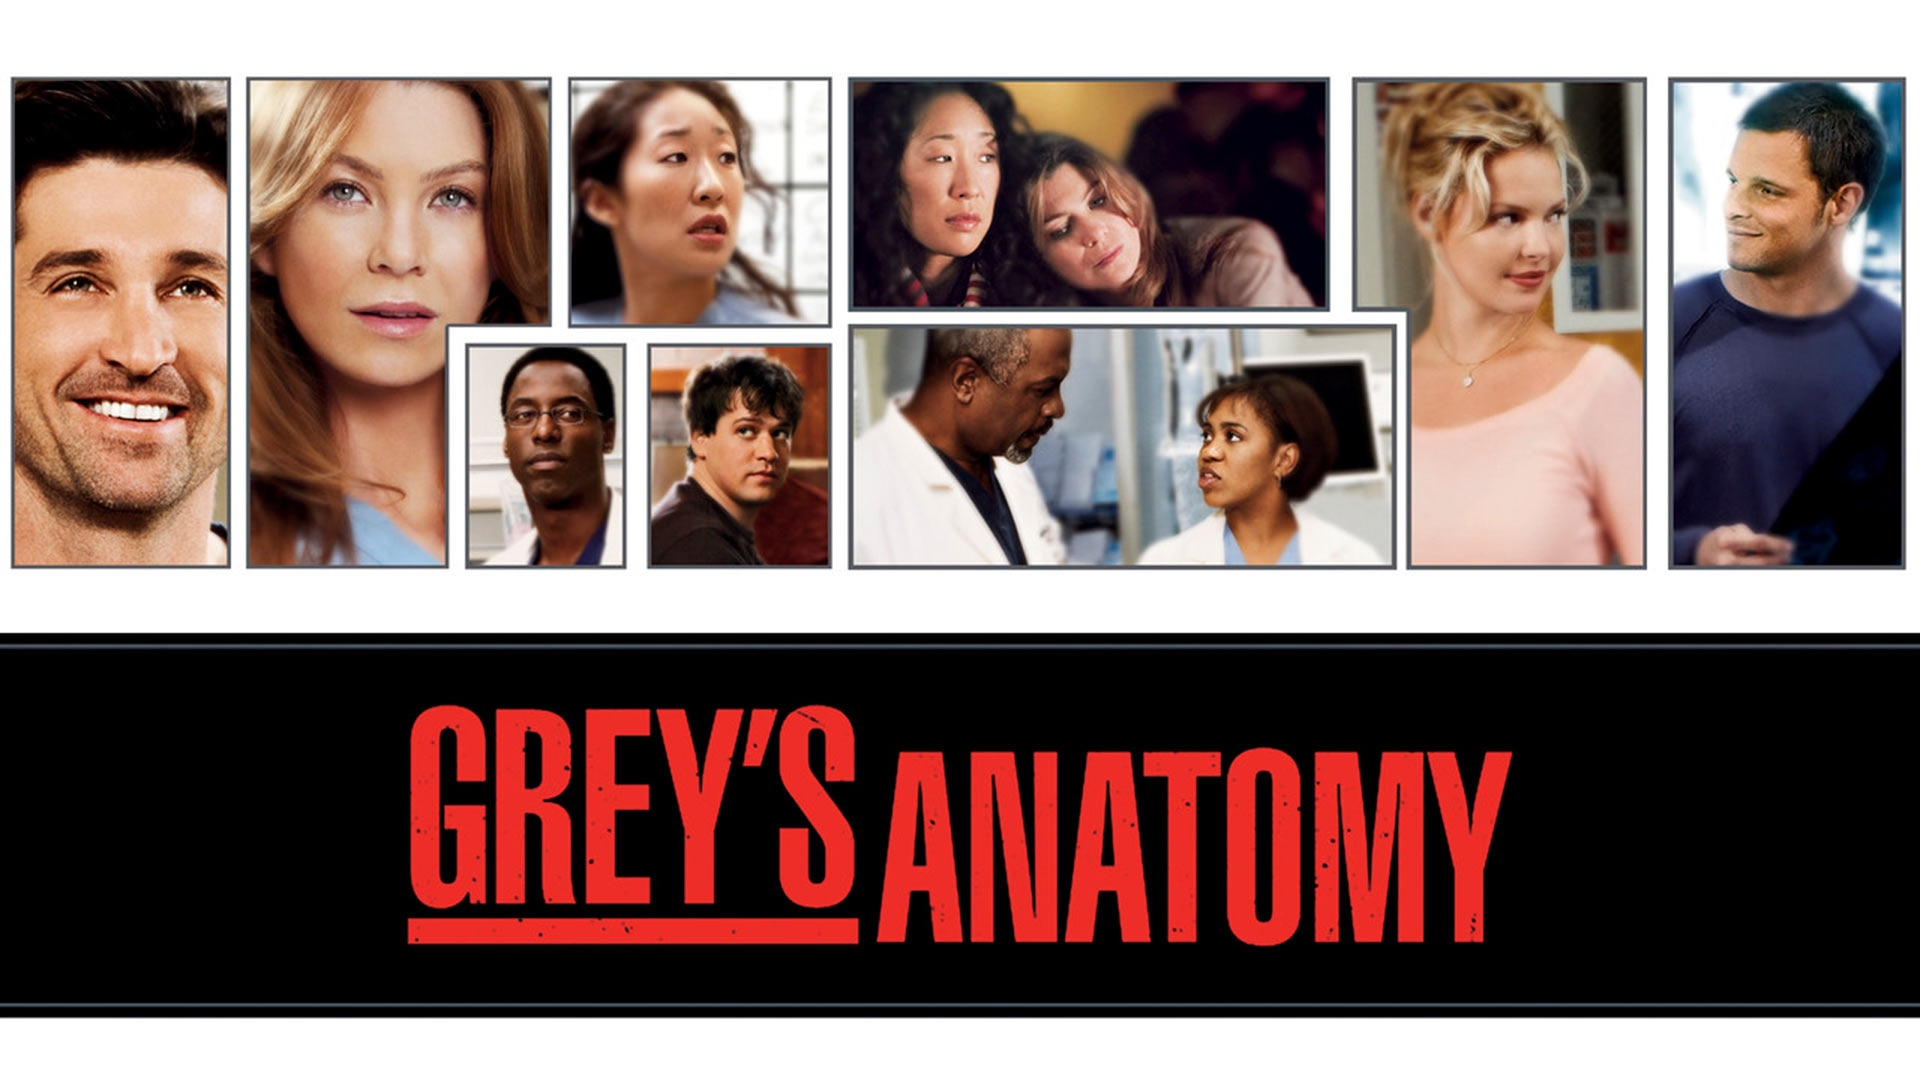 Attractive Greys Anatomy Streming Sketch - Anatomy and Physiology ...